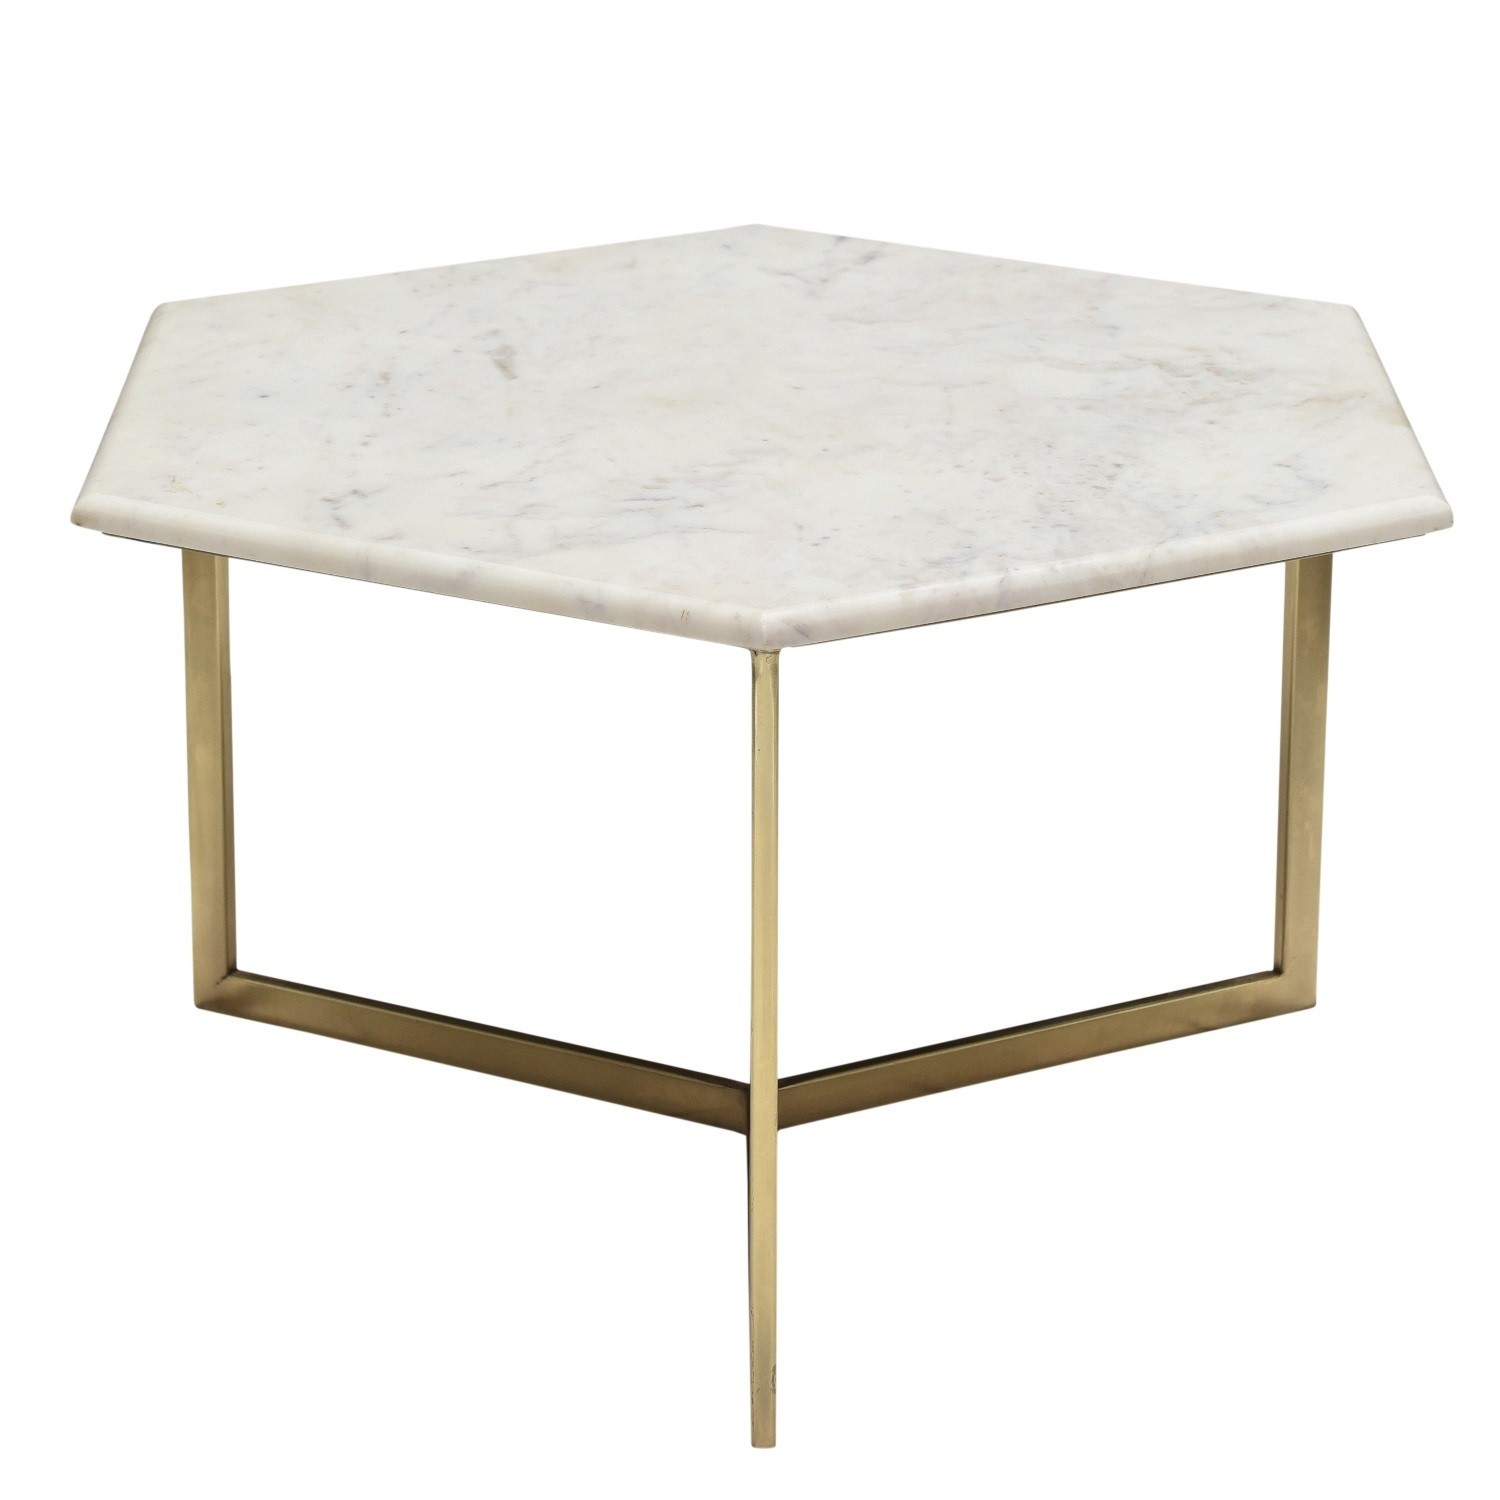 White Marble Coffee Table With Gold Legs Hexagon Furniture123